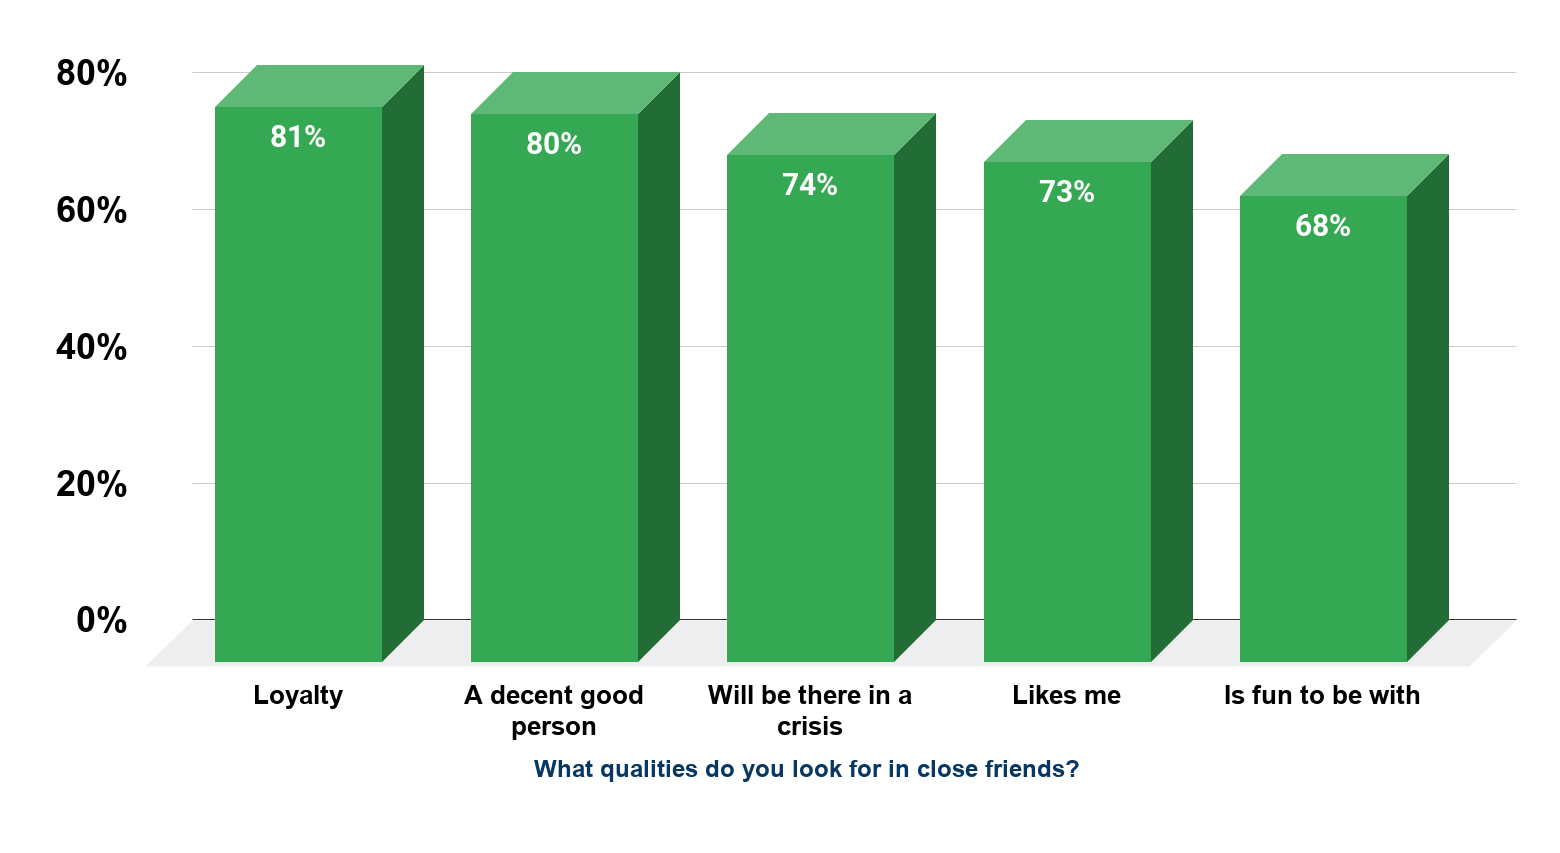 4. Qualities of a Good Friend in the United States (2013) Source Statista